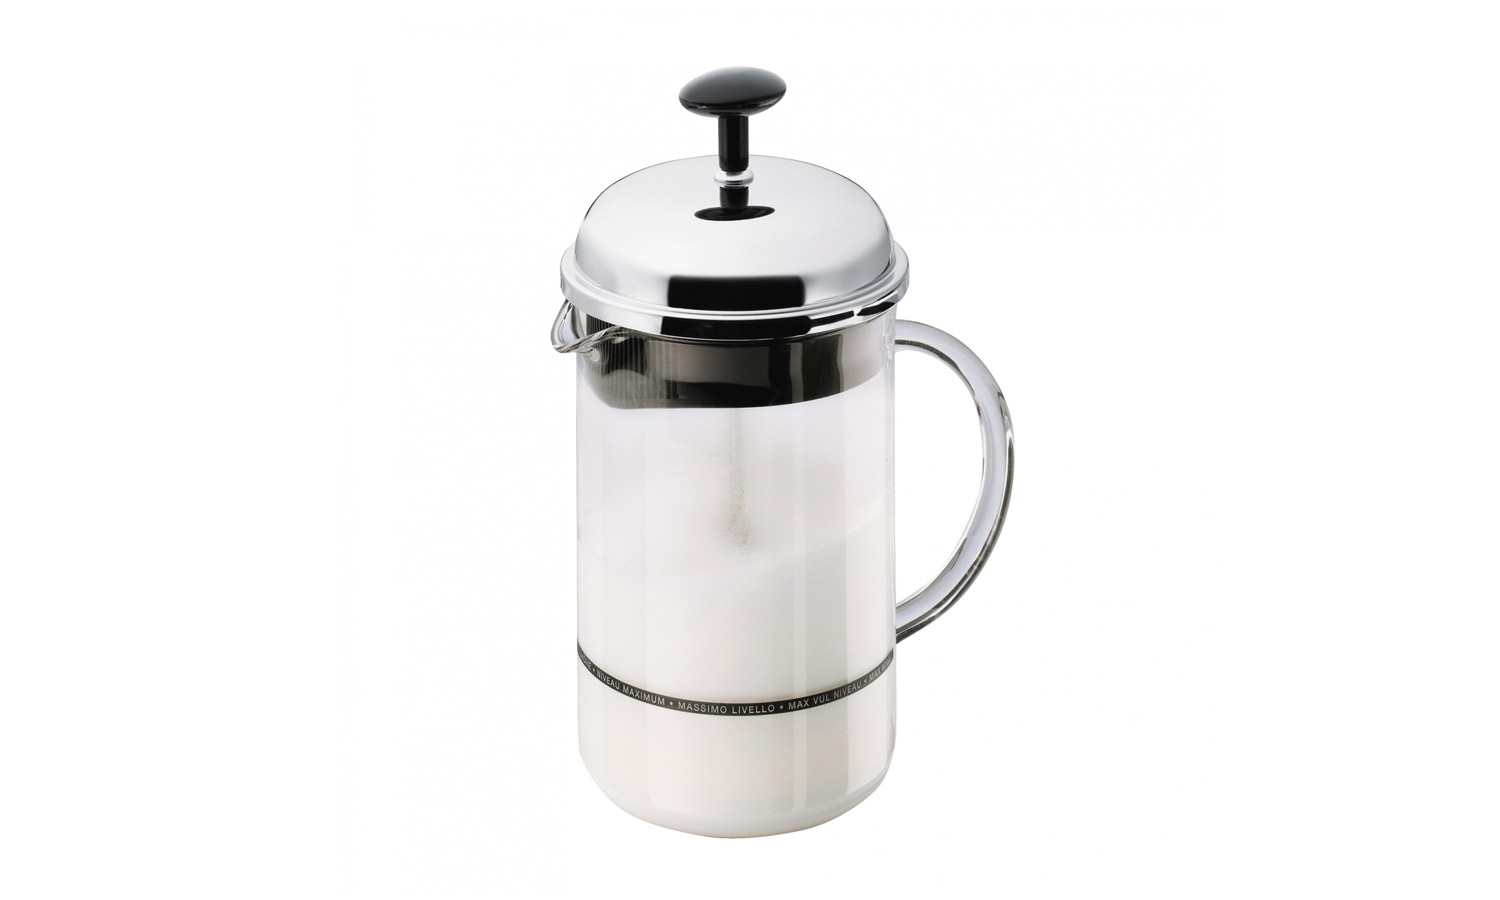 EC:  assets%2Fmessage-editor%2F1480359907045-chambord-milk-frother-inline-bodum